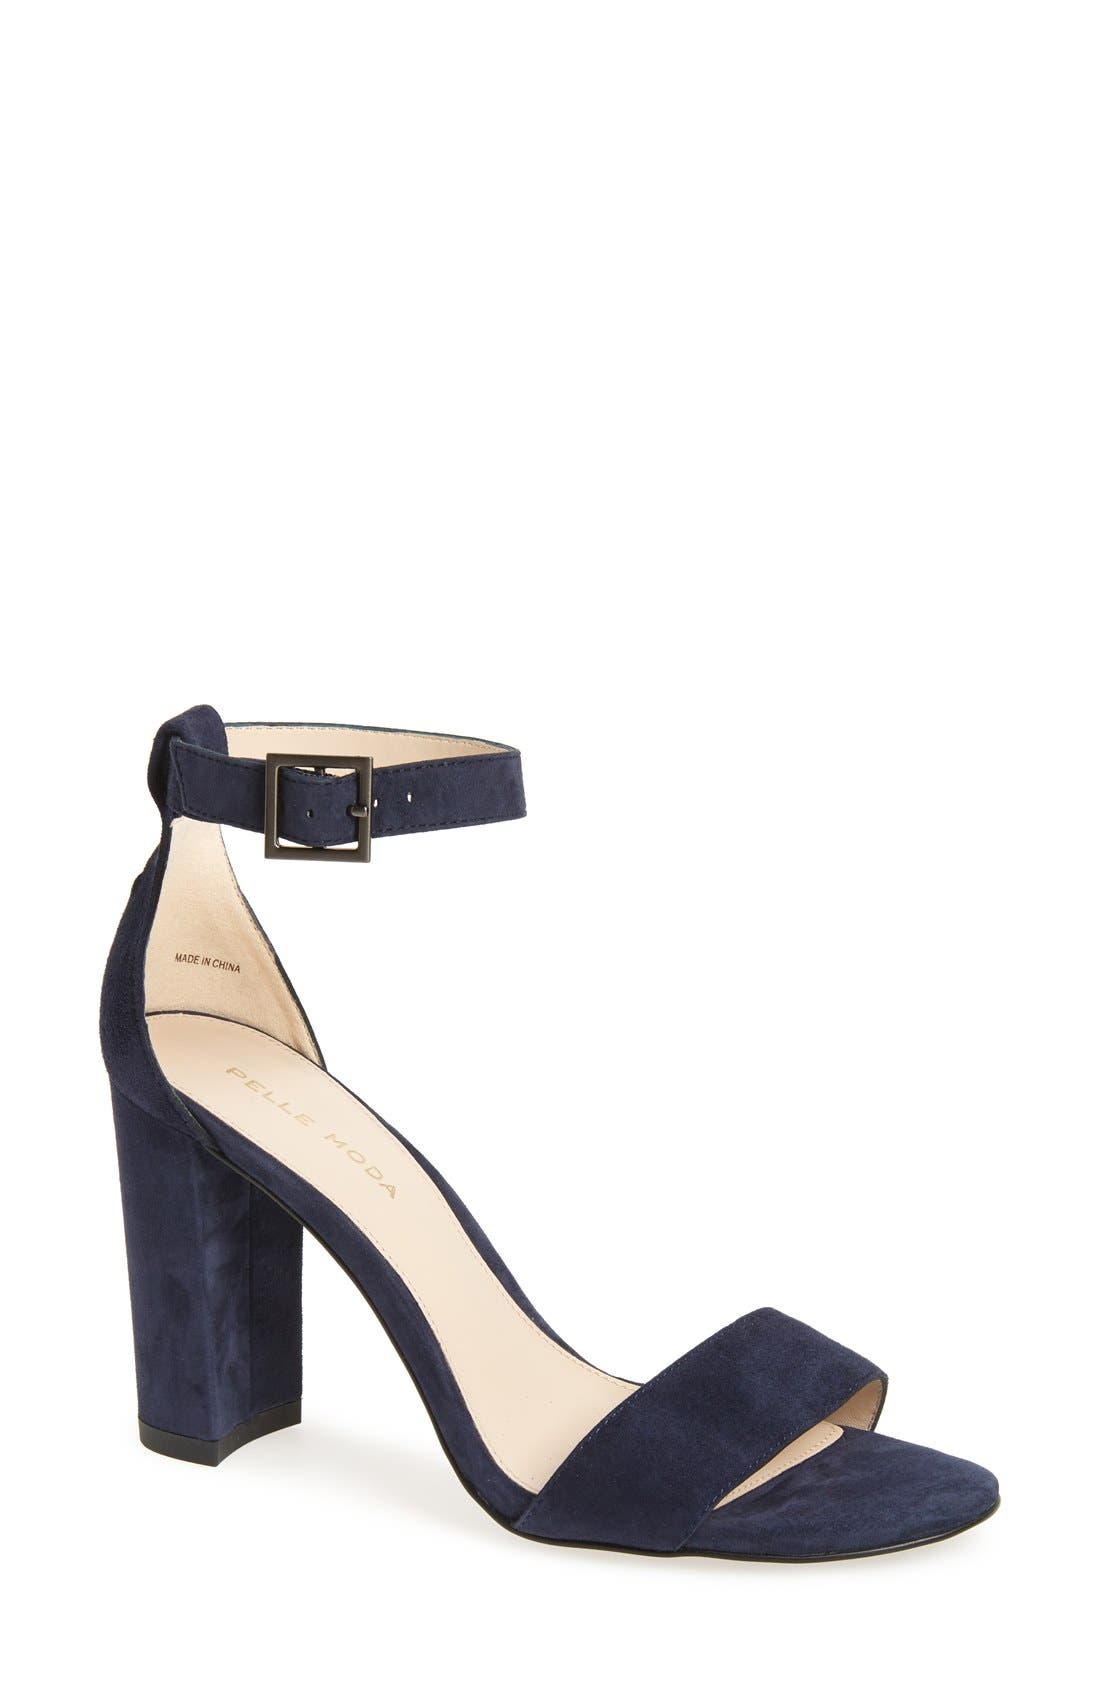 PELLE MODA Bonnie Ankle Strap Sandal, Main, color, MIDNIGHT BLUE SUEDE